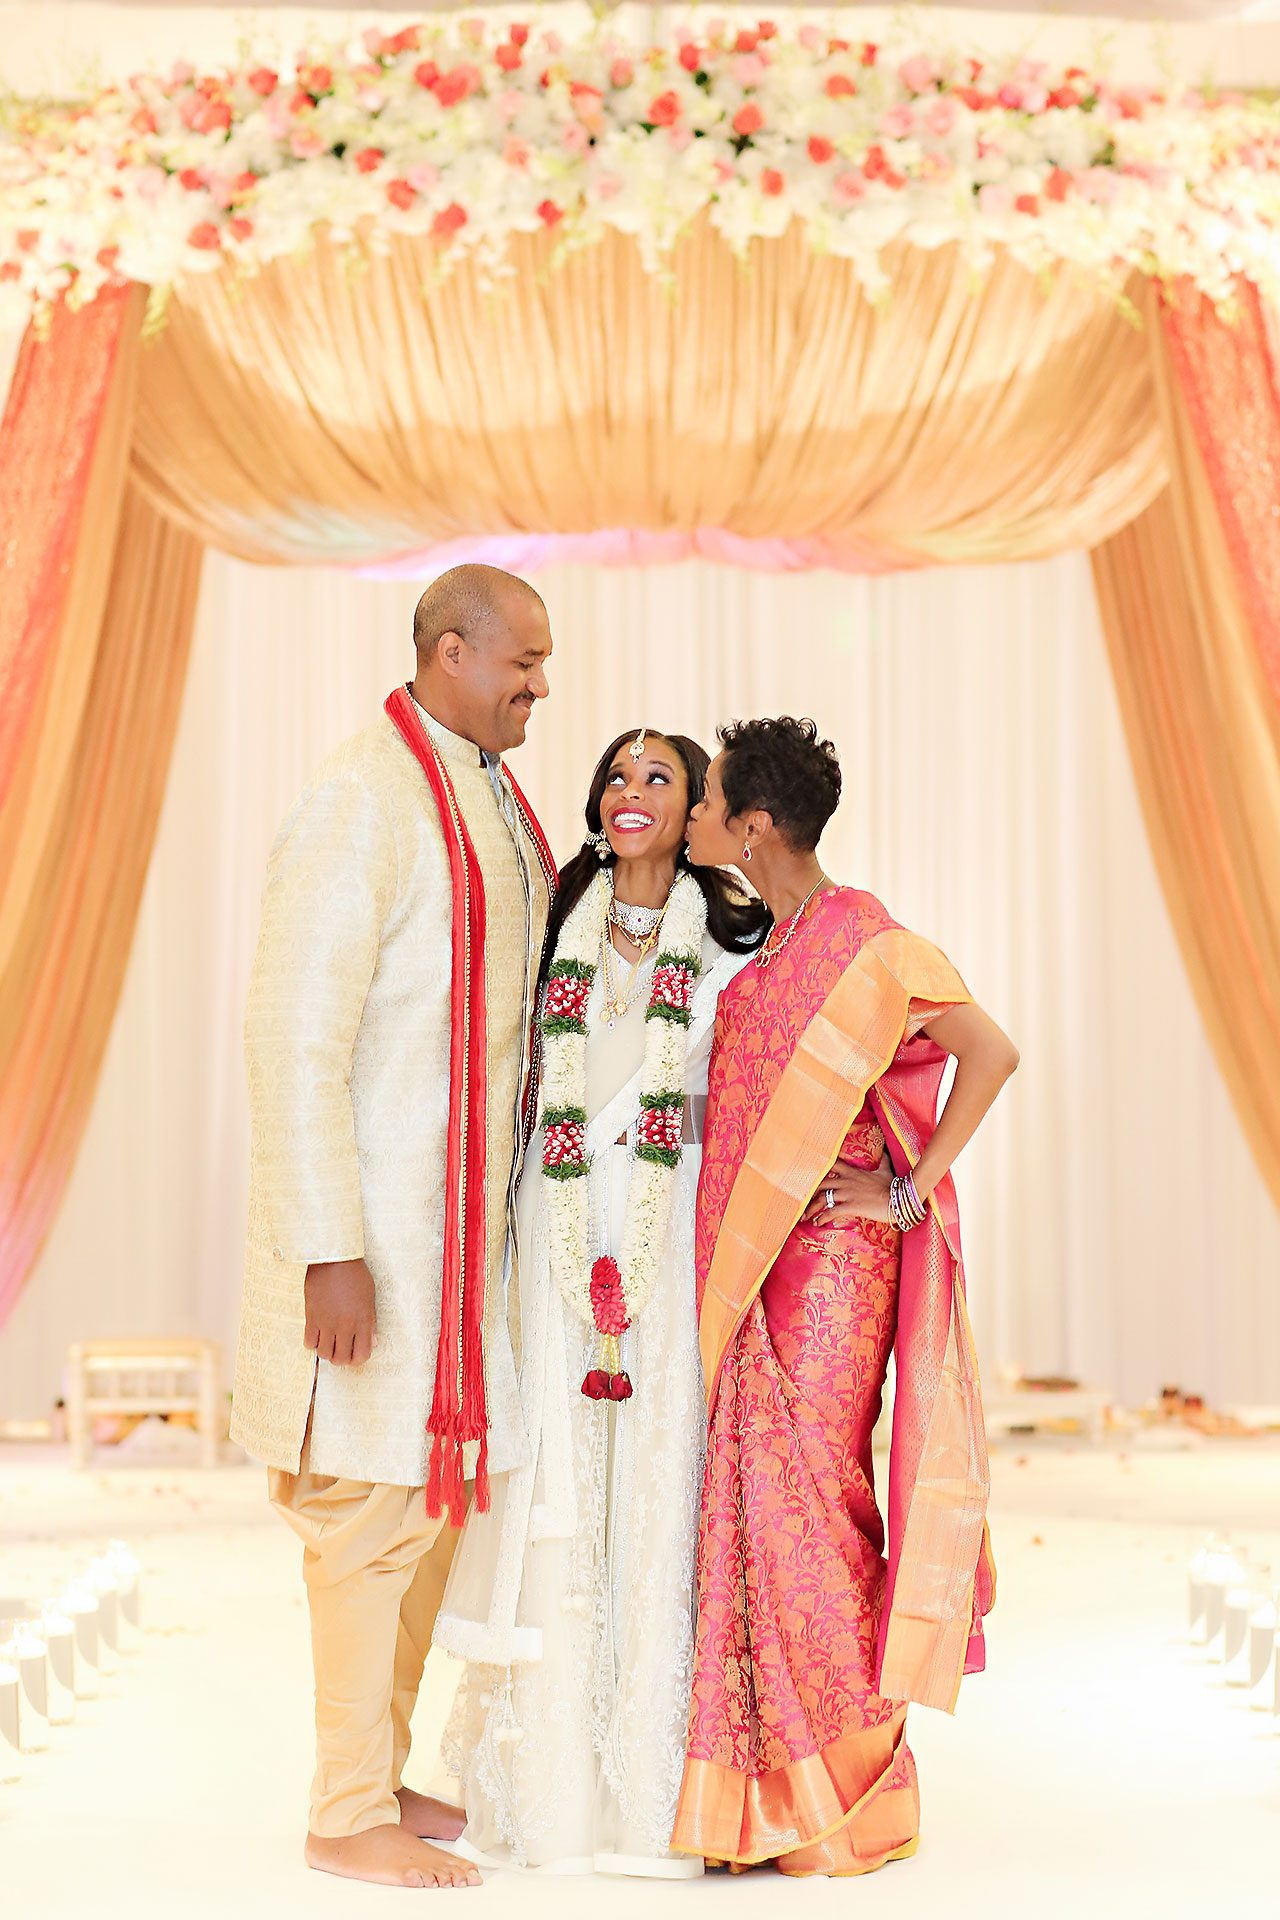 Joie Nikhil JW Marriott Indian Wedding 324